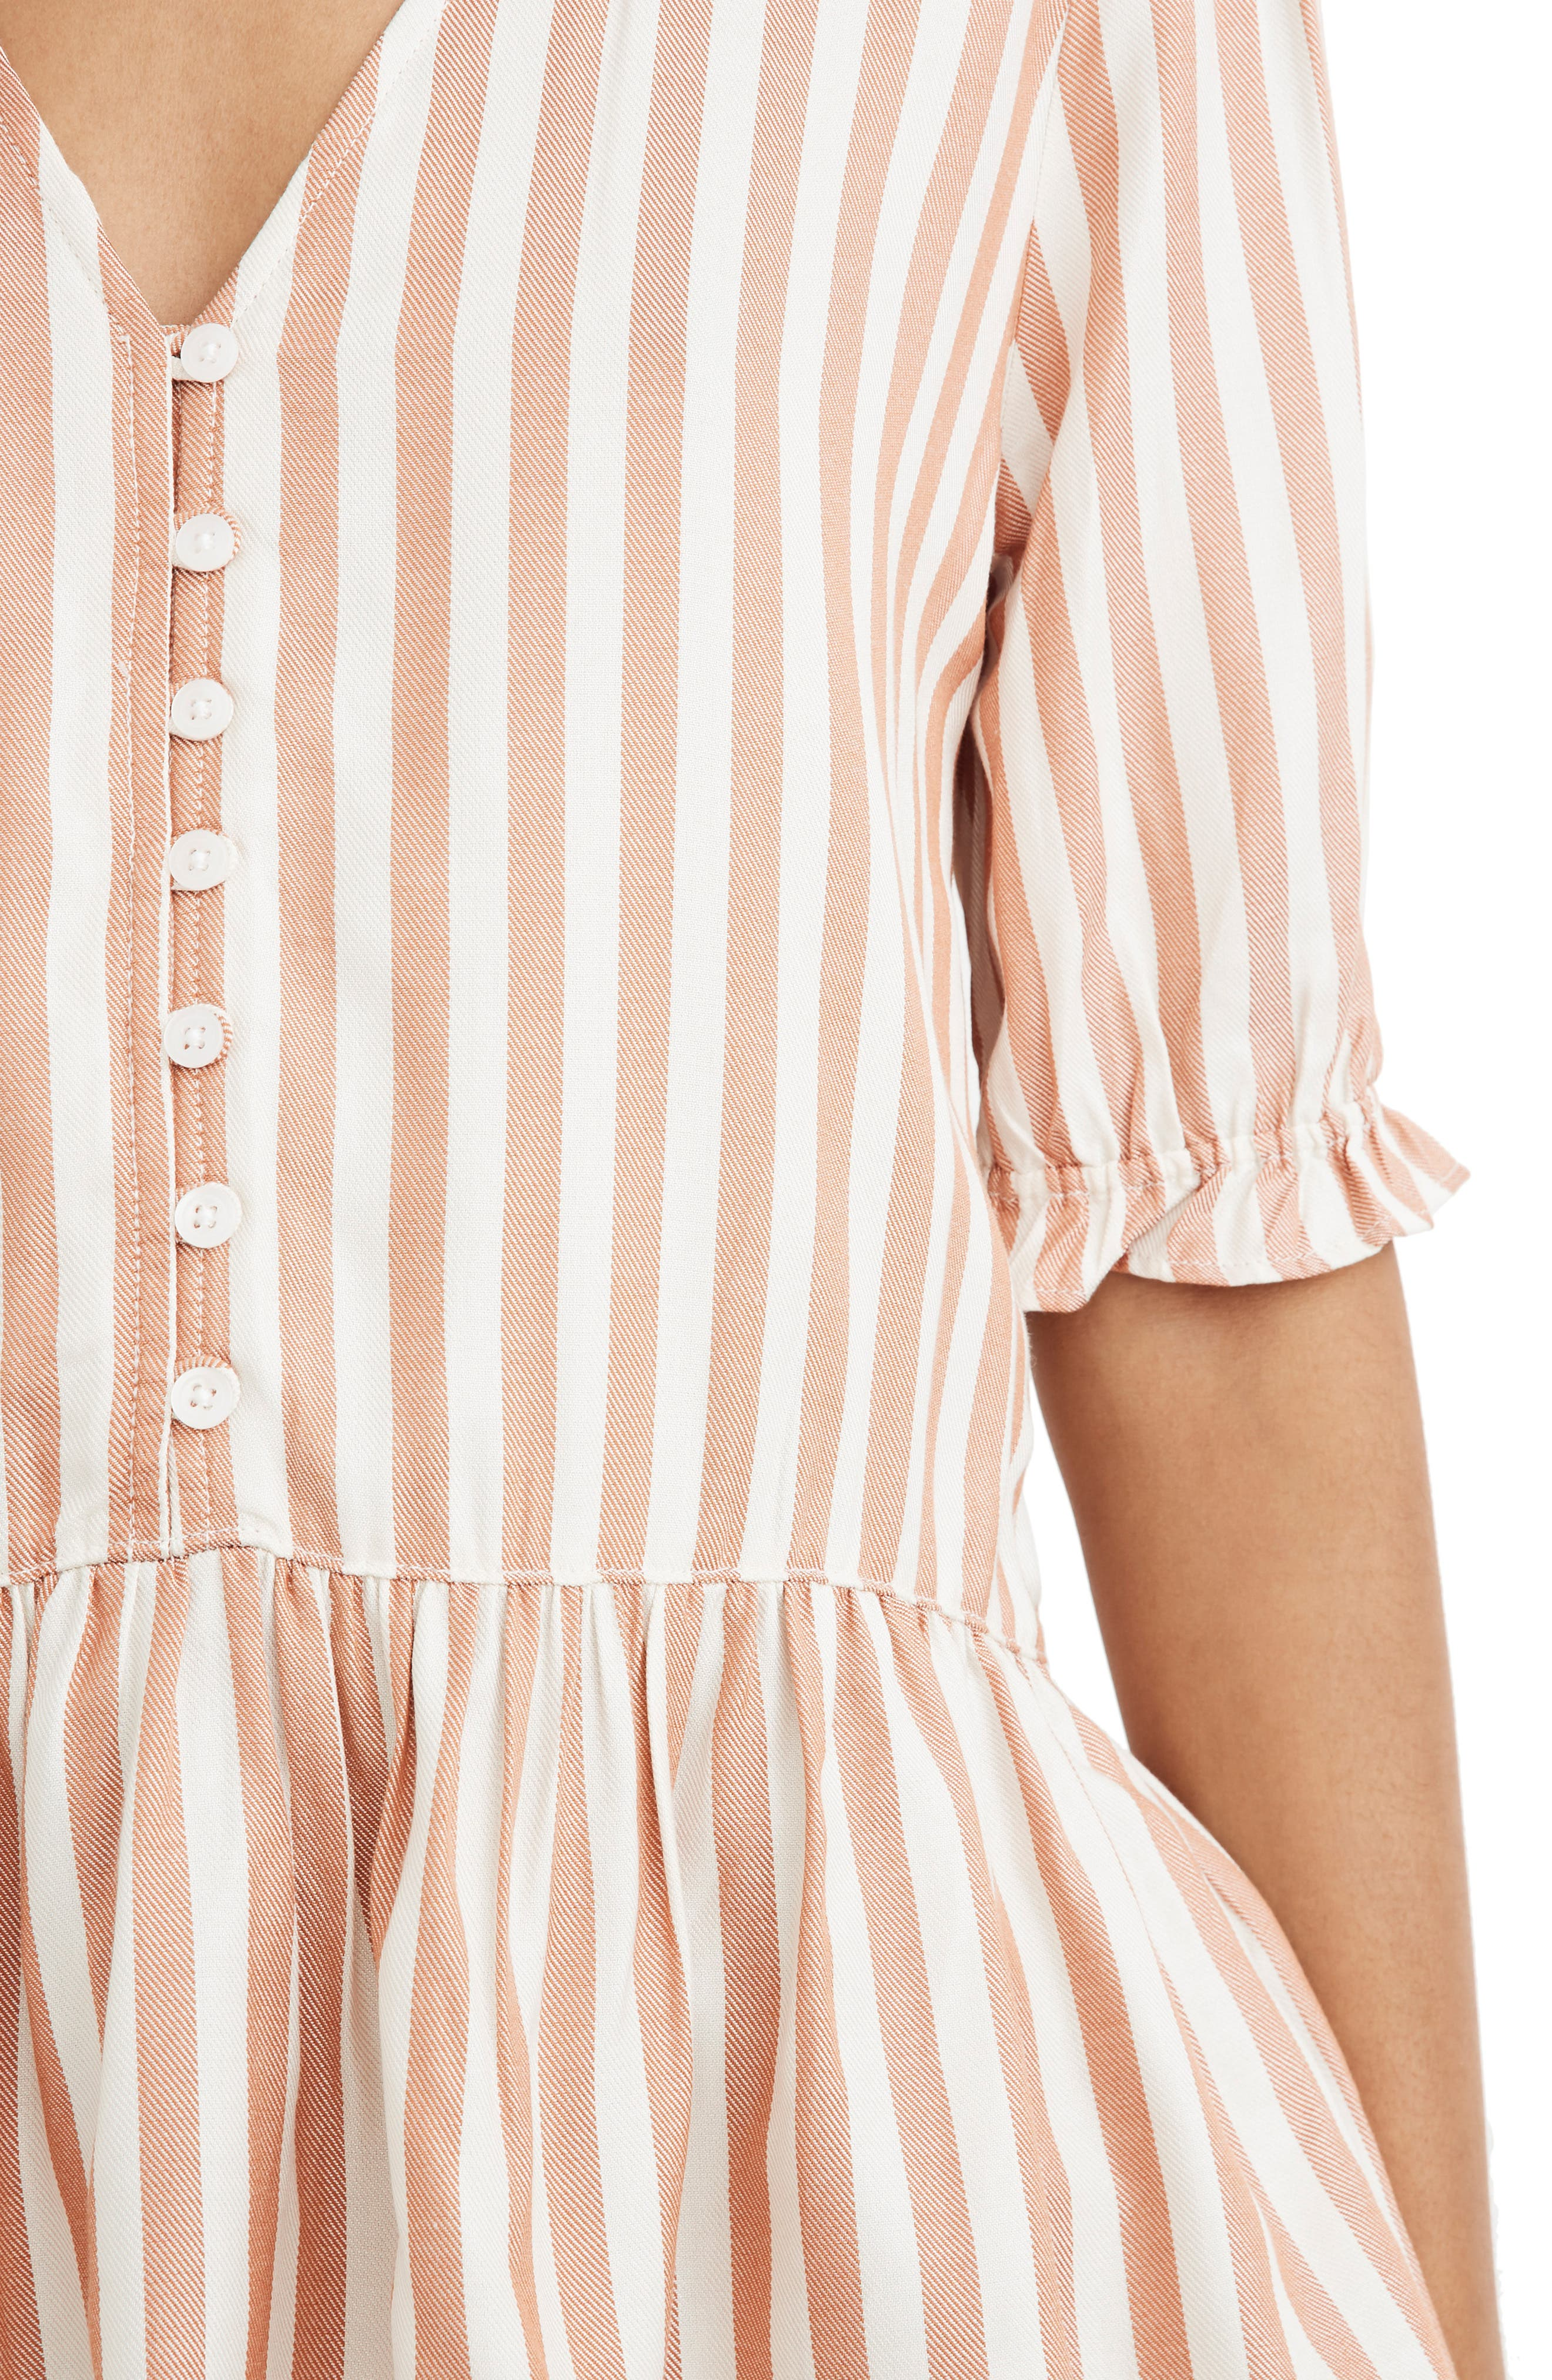 MADEWELL,                             Courtyard Ruffle Hem Top,                             Alternate thumbnail 4, color,                             STRIPE